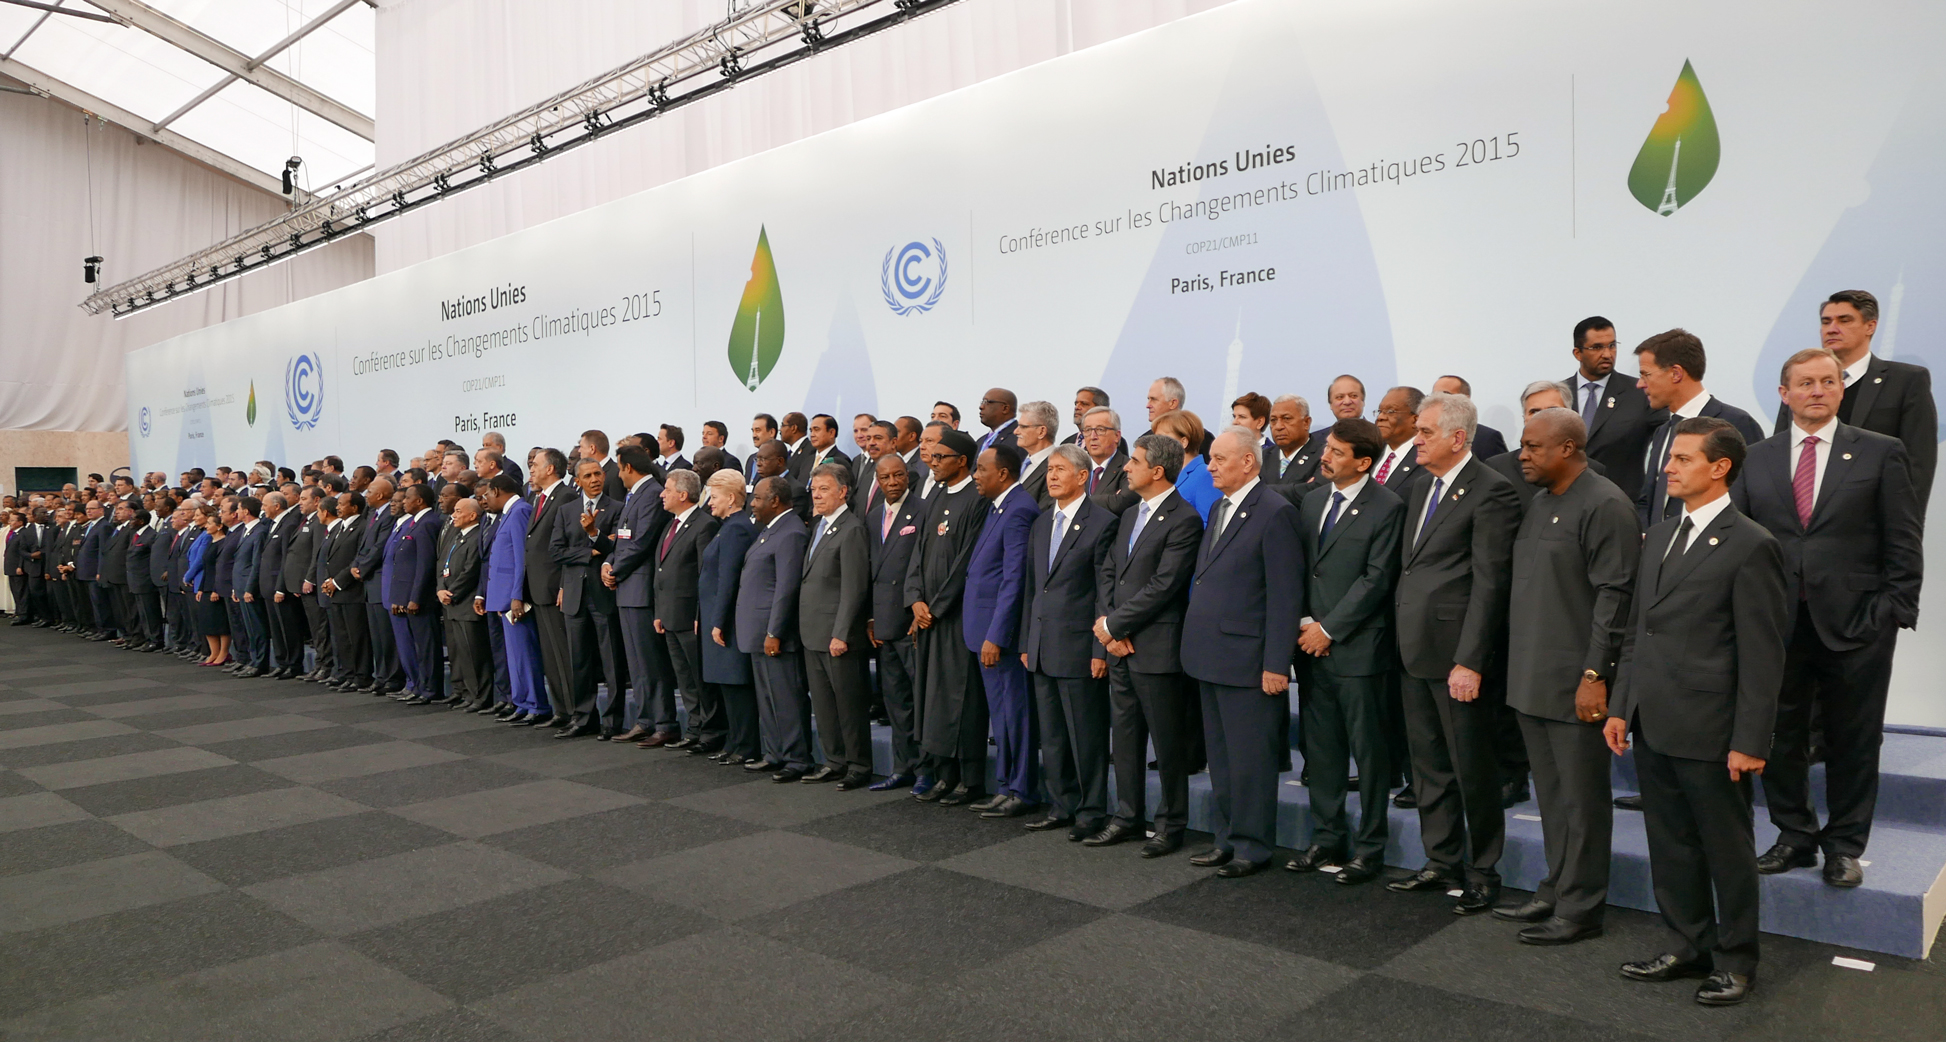 Nearly 150 countries under the United Nations framework convention will show up in New York to sign the agreement on climate change